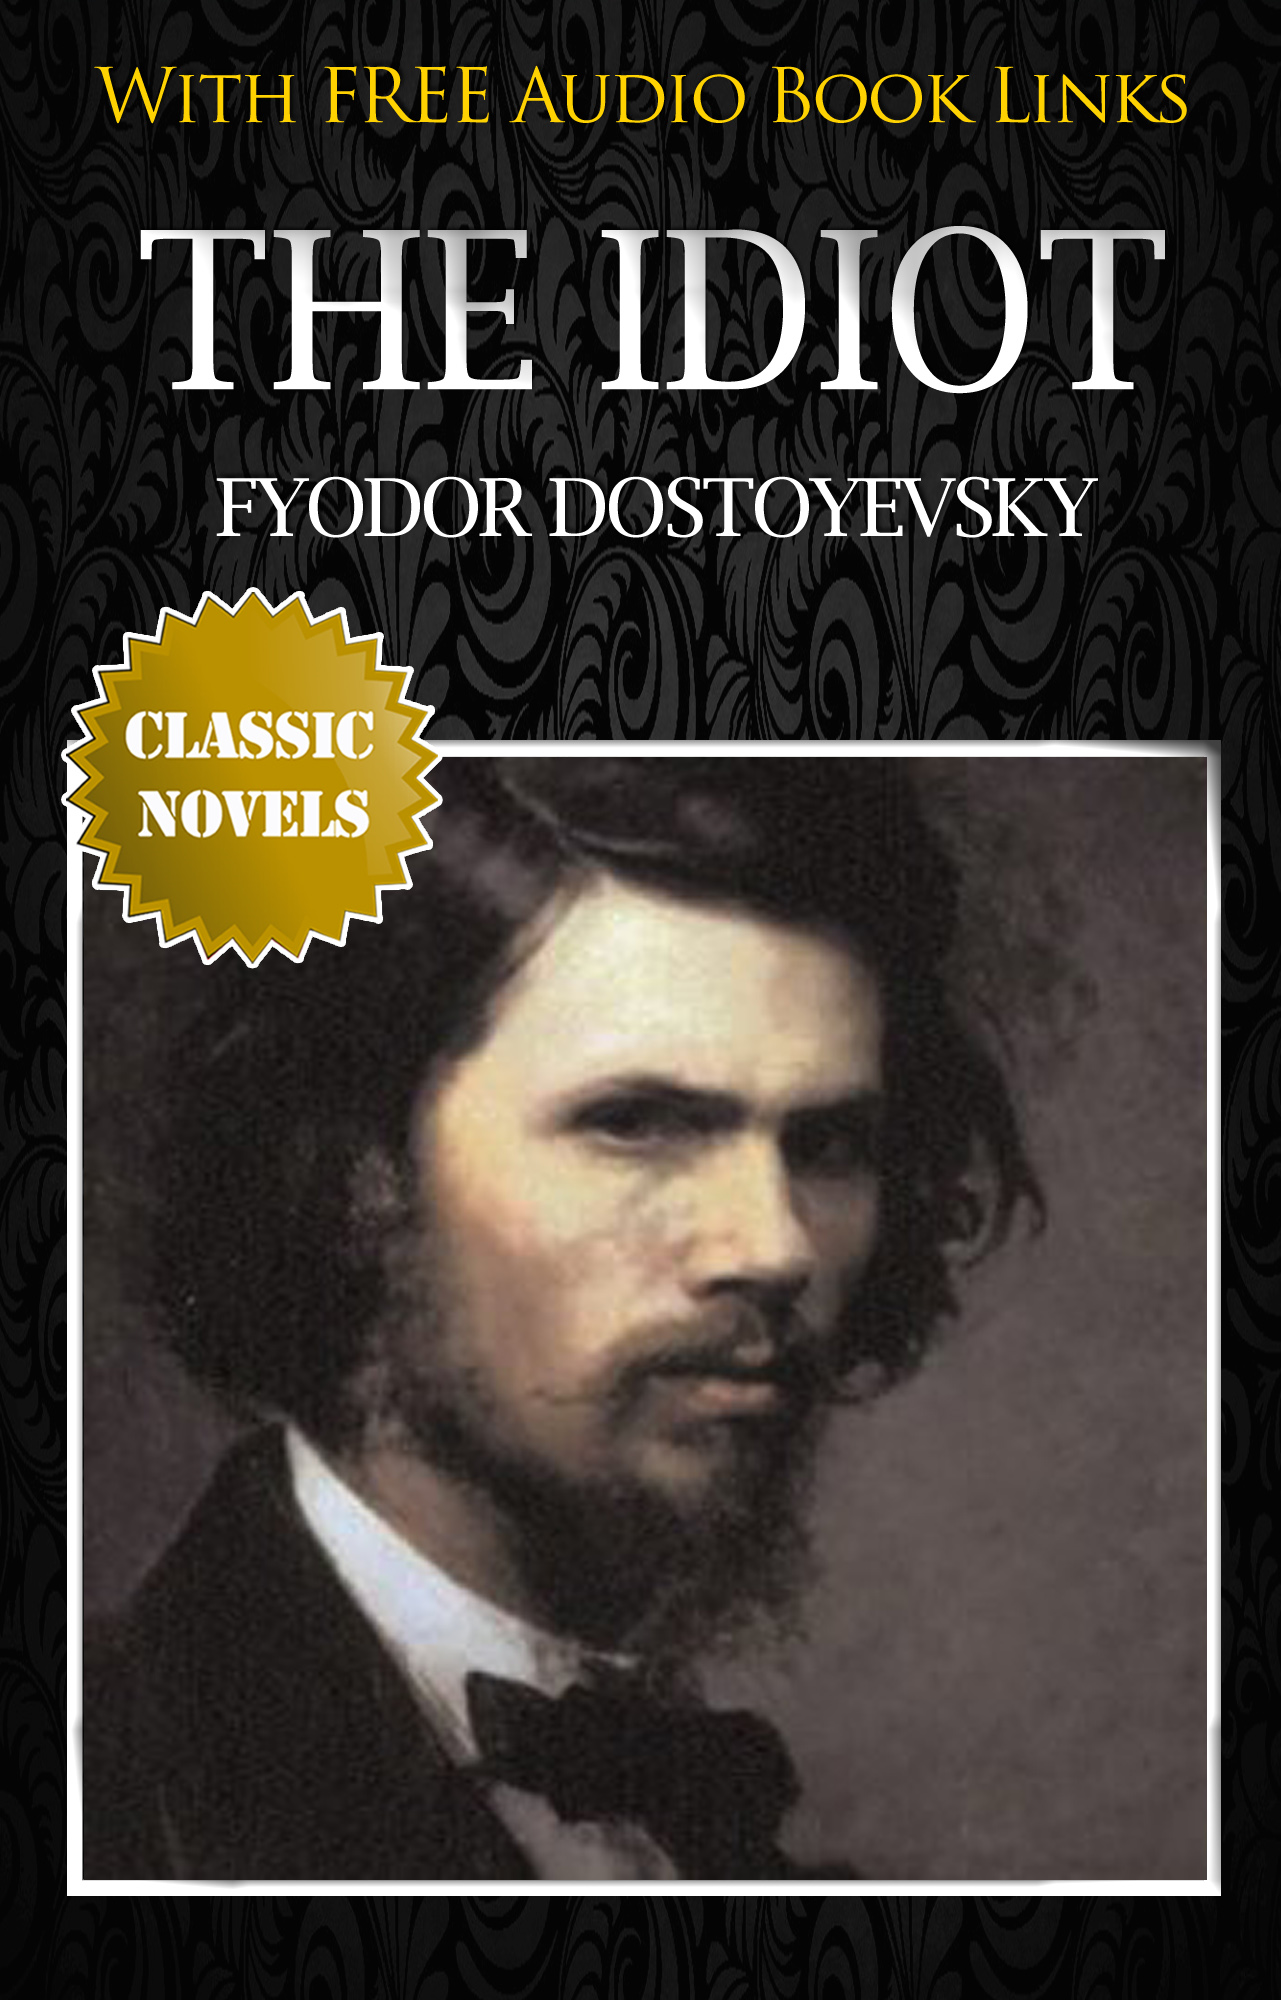 THE IDIOT Classic Novels: New Illustrated [Free Audiobook Links] By: Fyodor Dostoyevsky